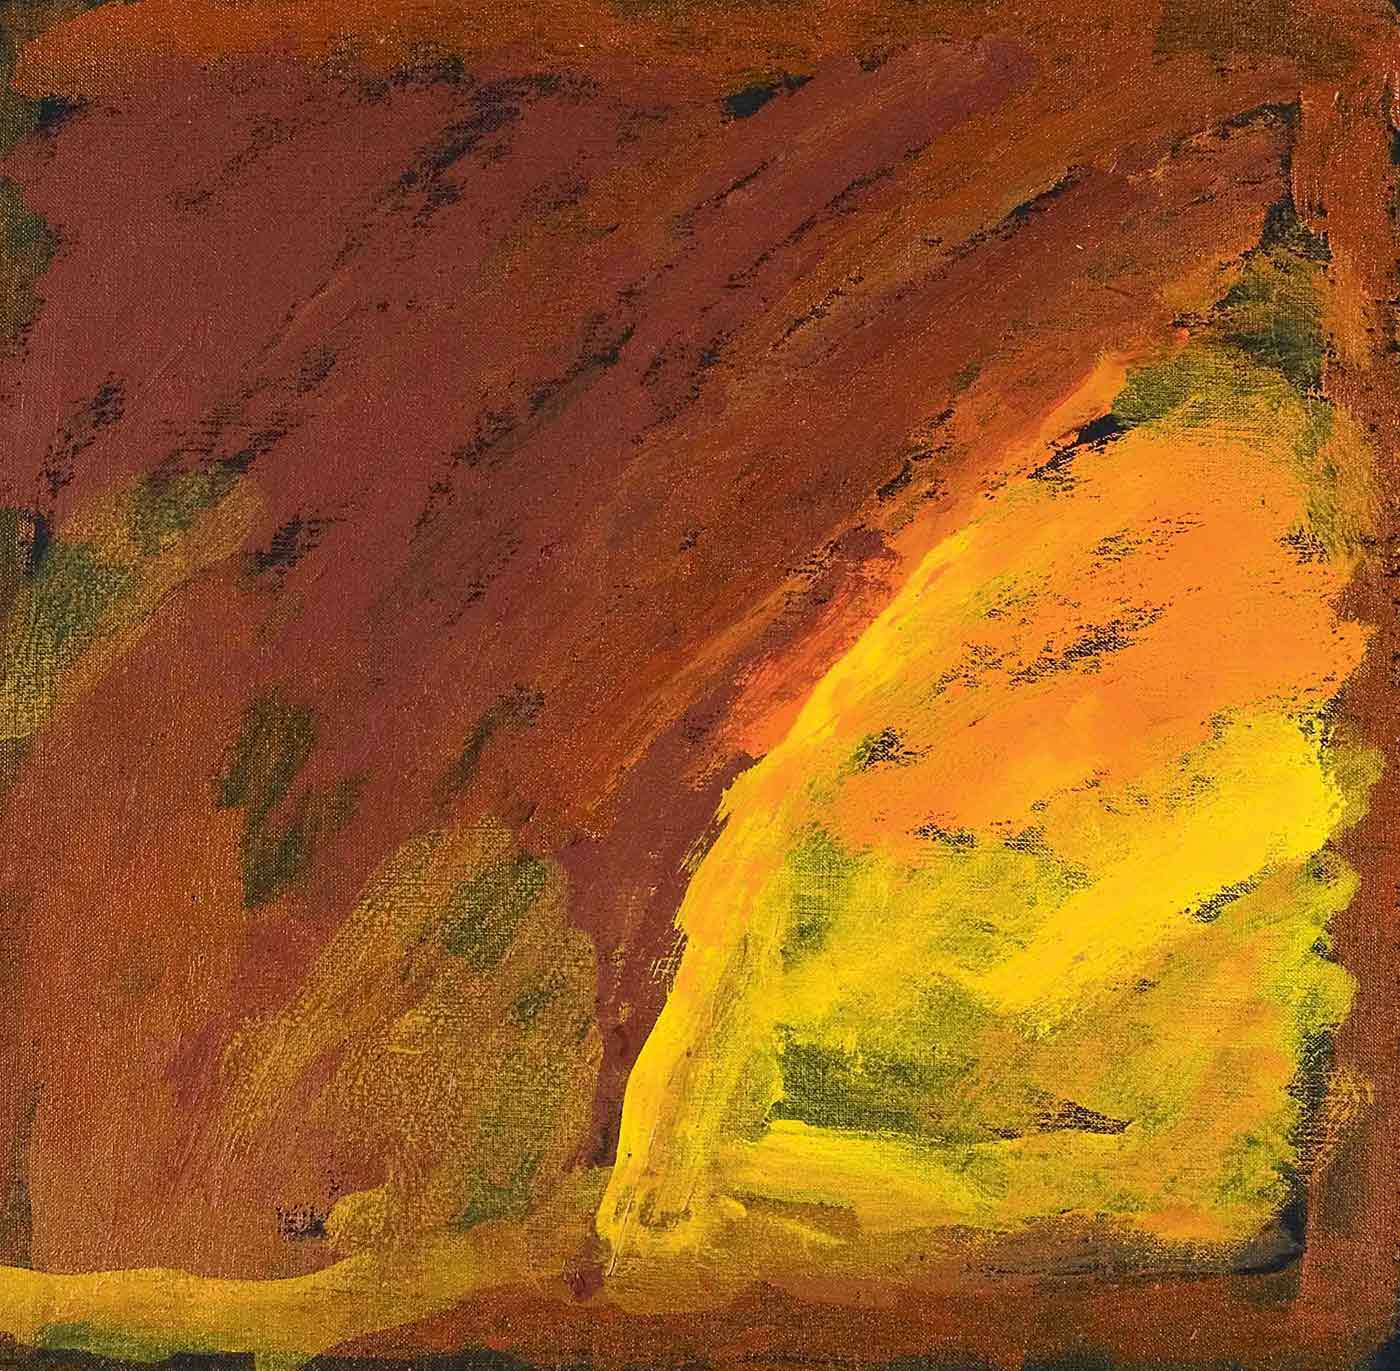 A brown linen canvas featuring a square painting on a black background with shades of yellow, brown and orange. One corner is filled with yellow with a curved edge like a quarter of a circle, which then blends into the brown and orange colours of the rest of the canvas. The text on the bottom edge of the canvas reads 'Milly Kelly - Martumil' and 'PMK/26/MM 45 x 45cm' is on the right side edge. - click to view larger image